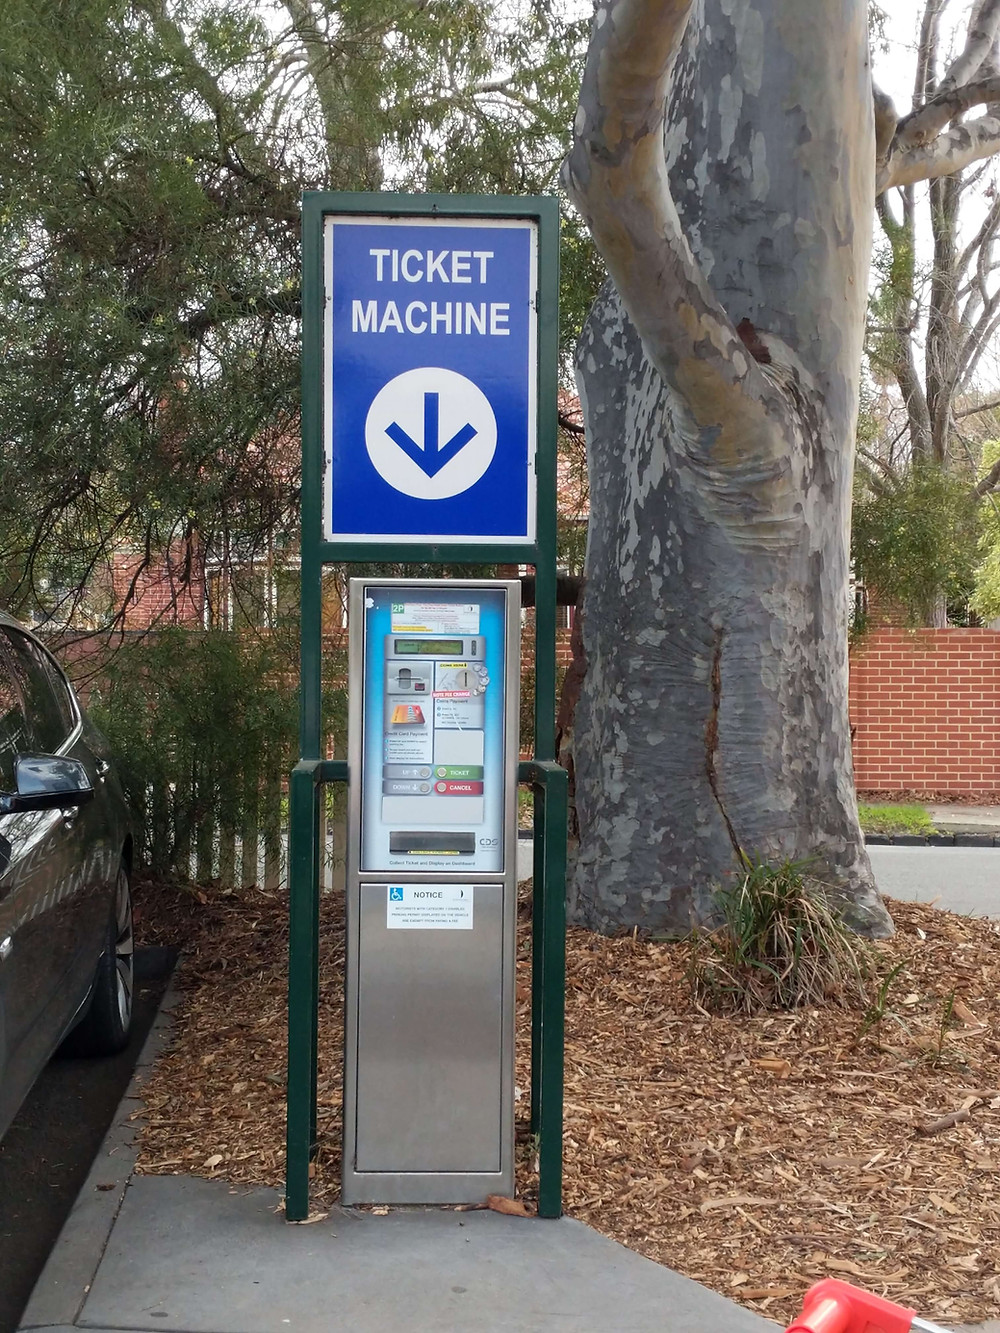 Parking ticket machine in Lido Arcade carpark.